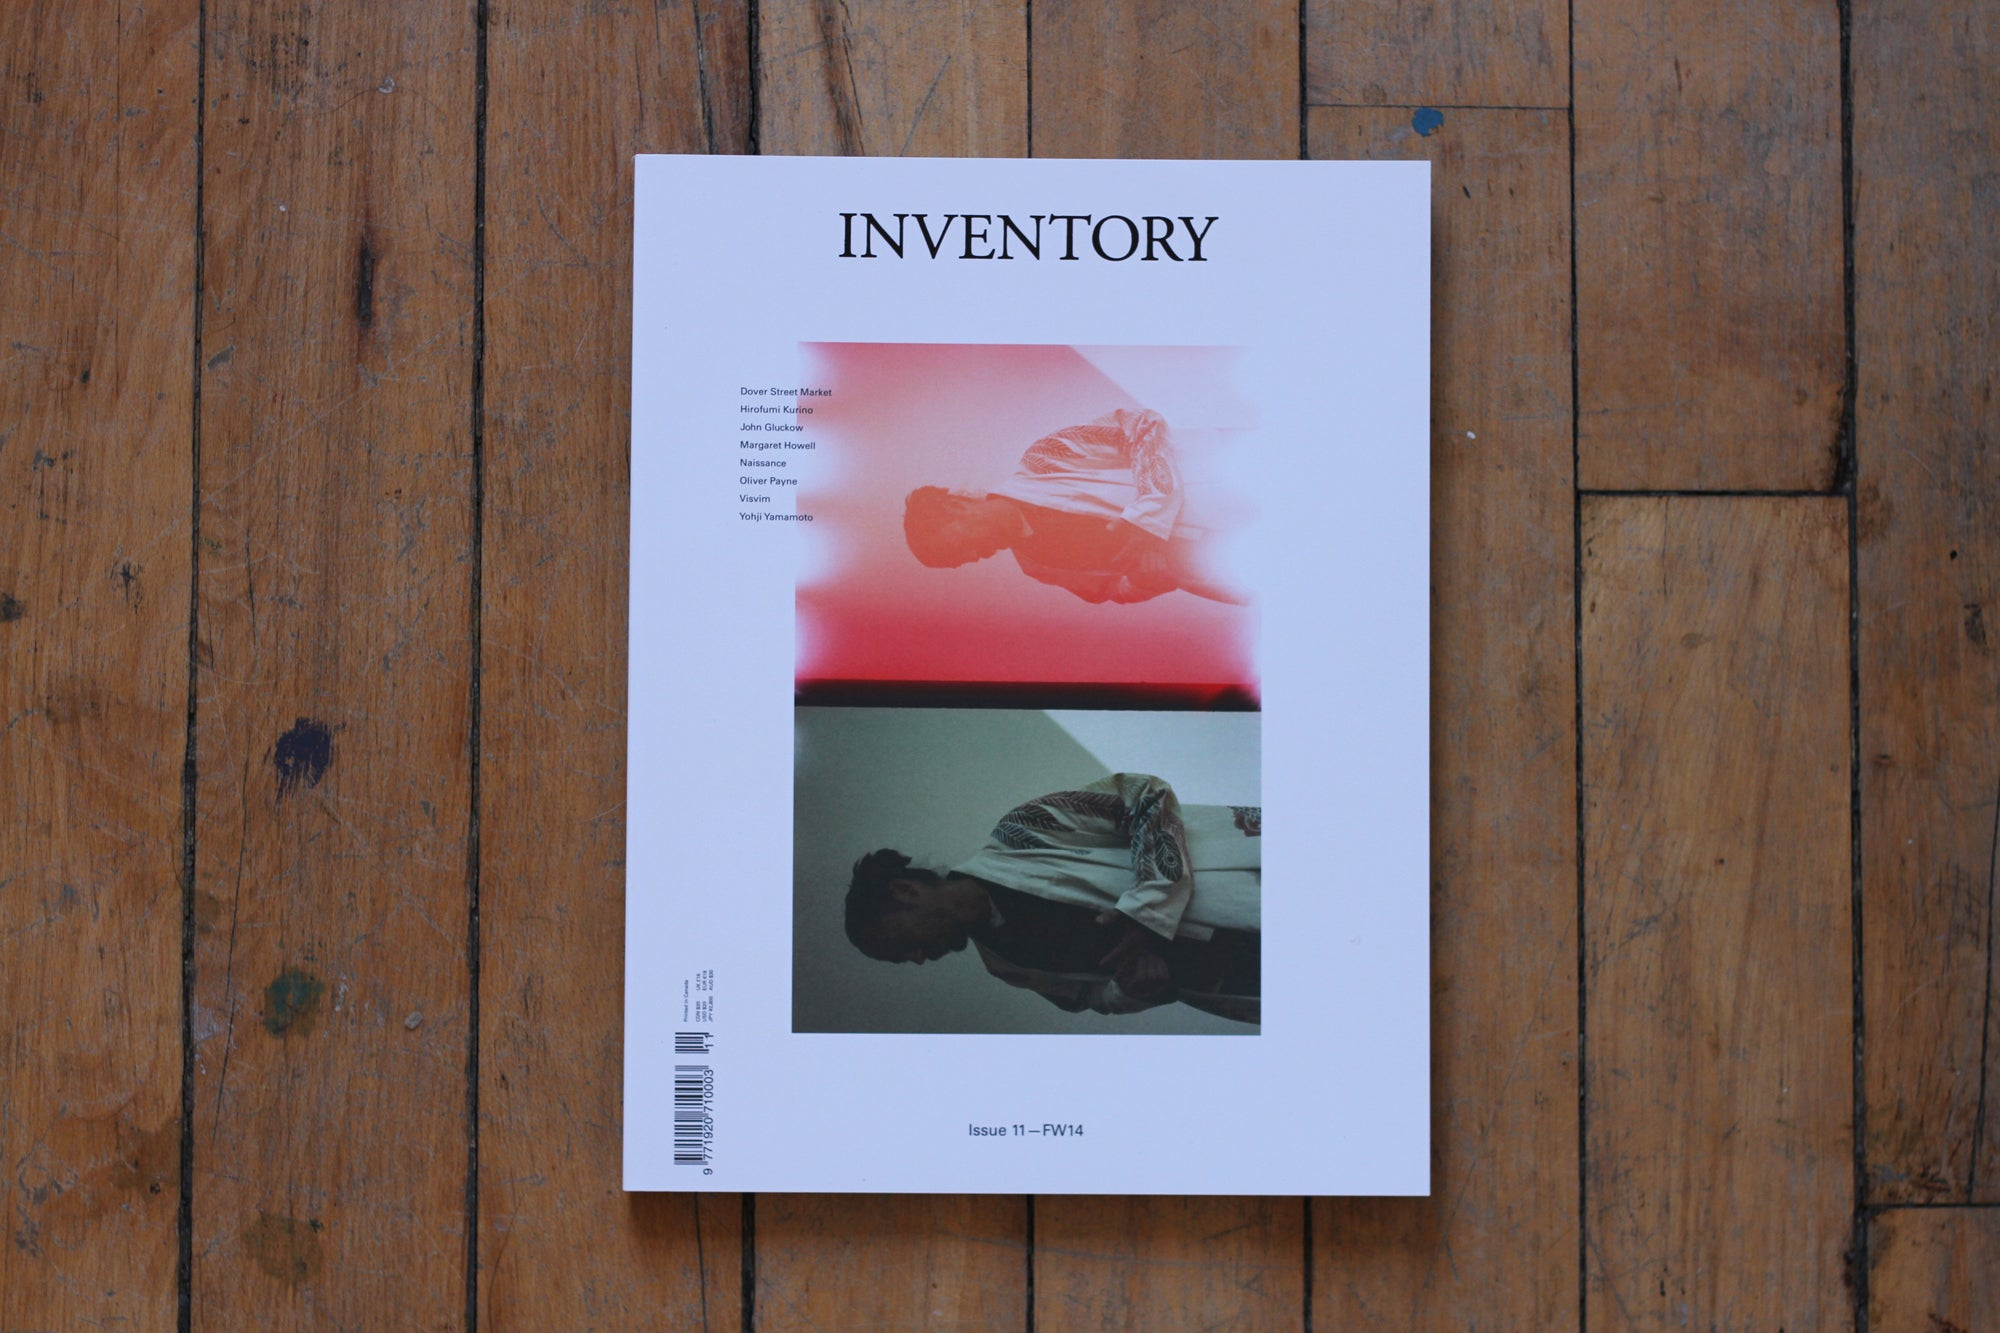 INVENTORY ISSUE 11